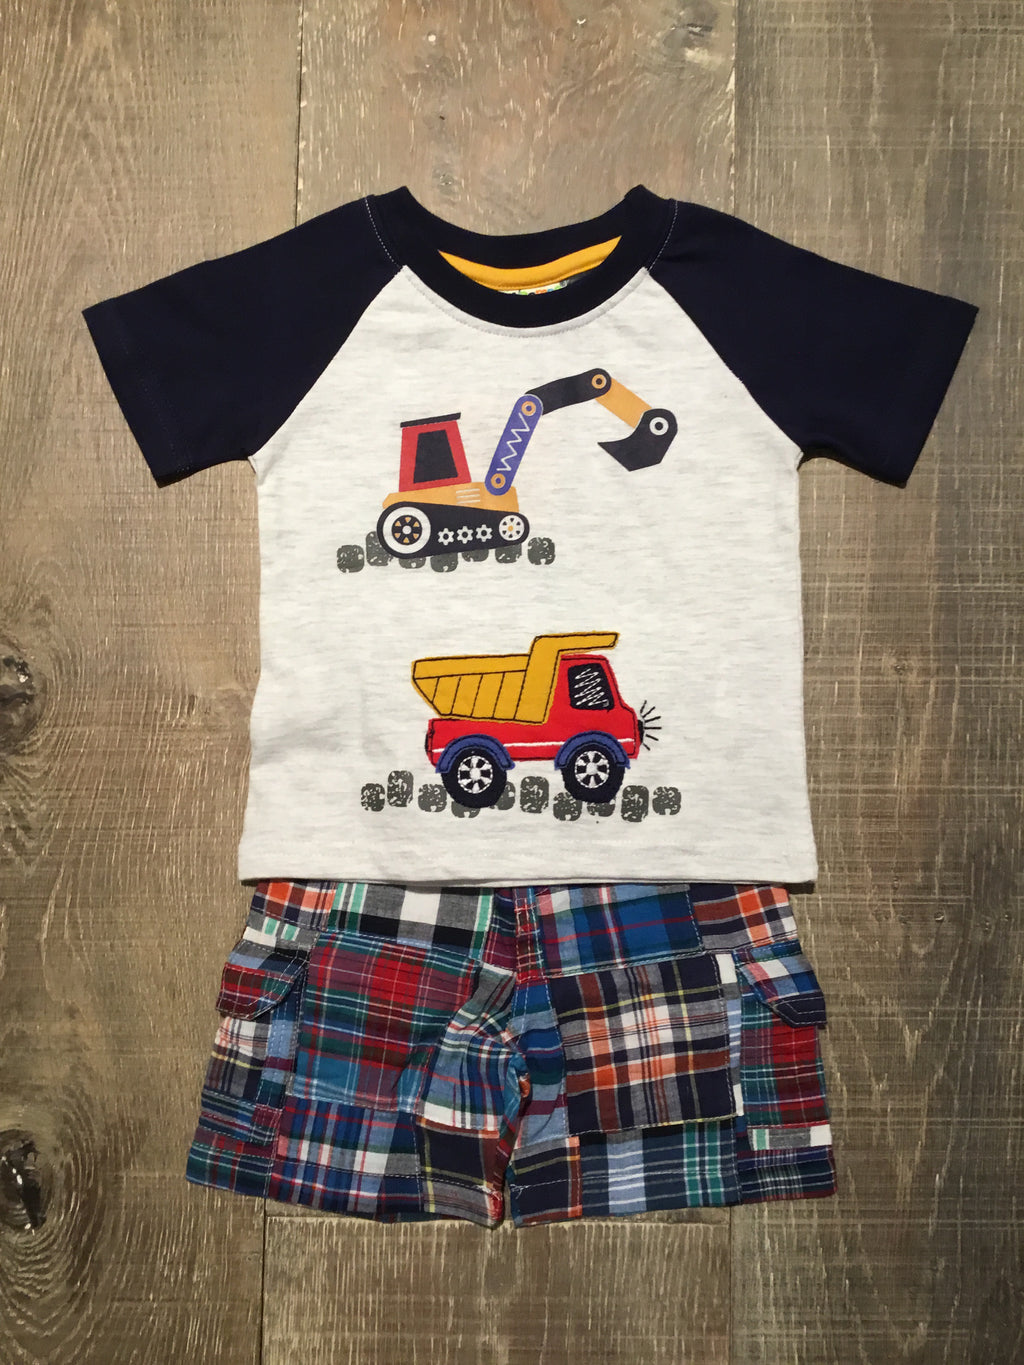 Construction Shirt & Shorts Set